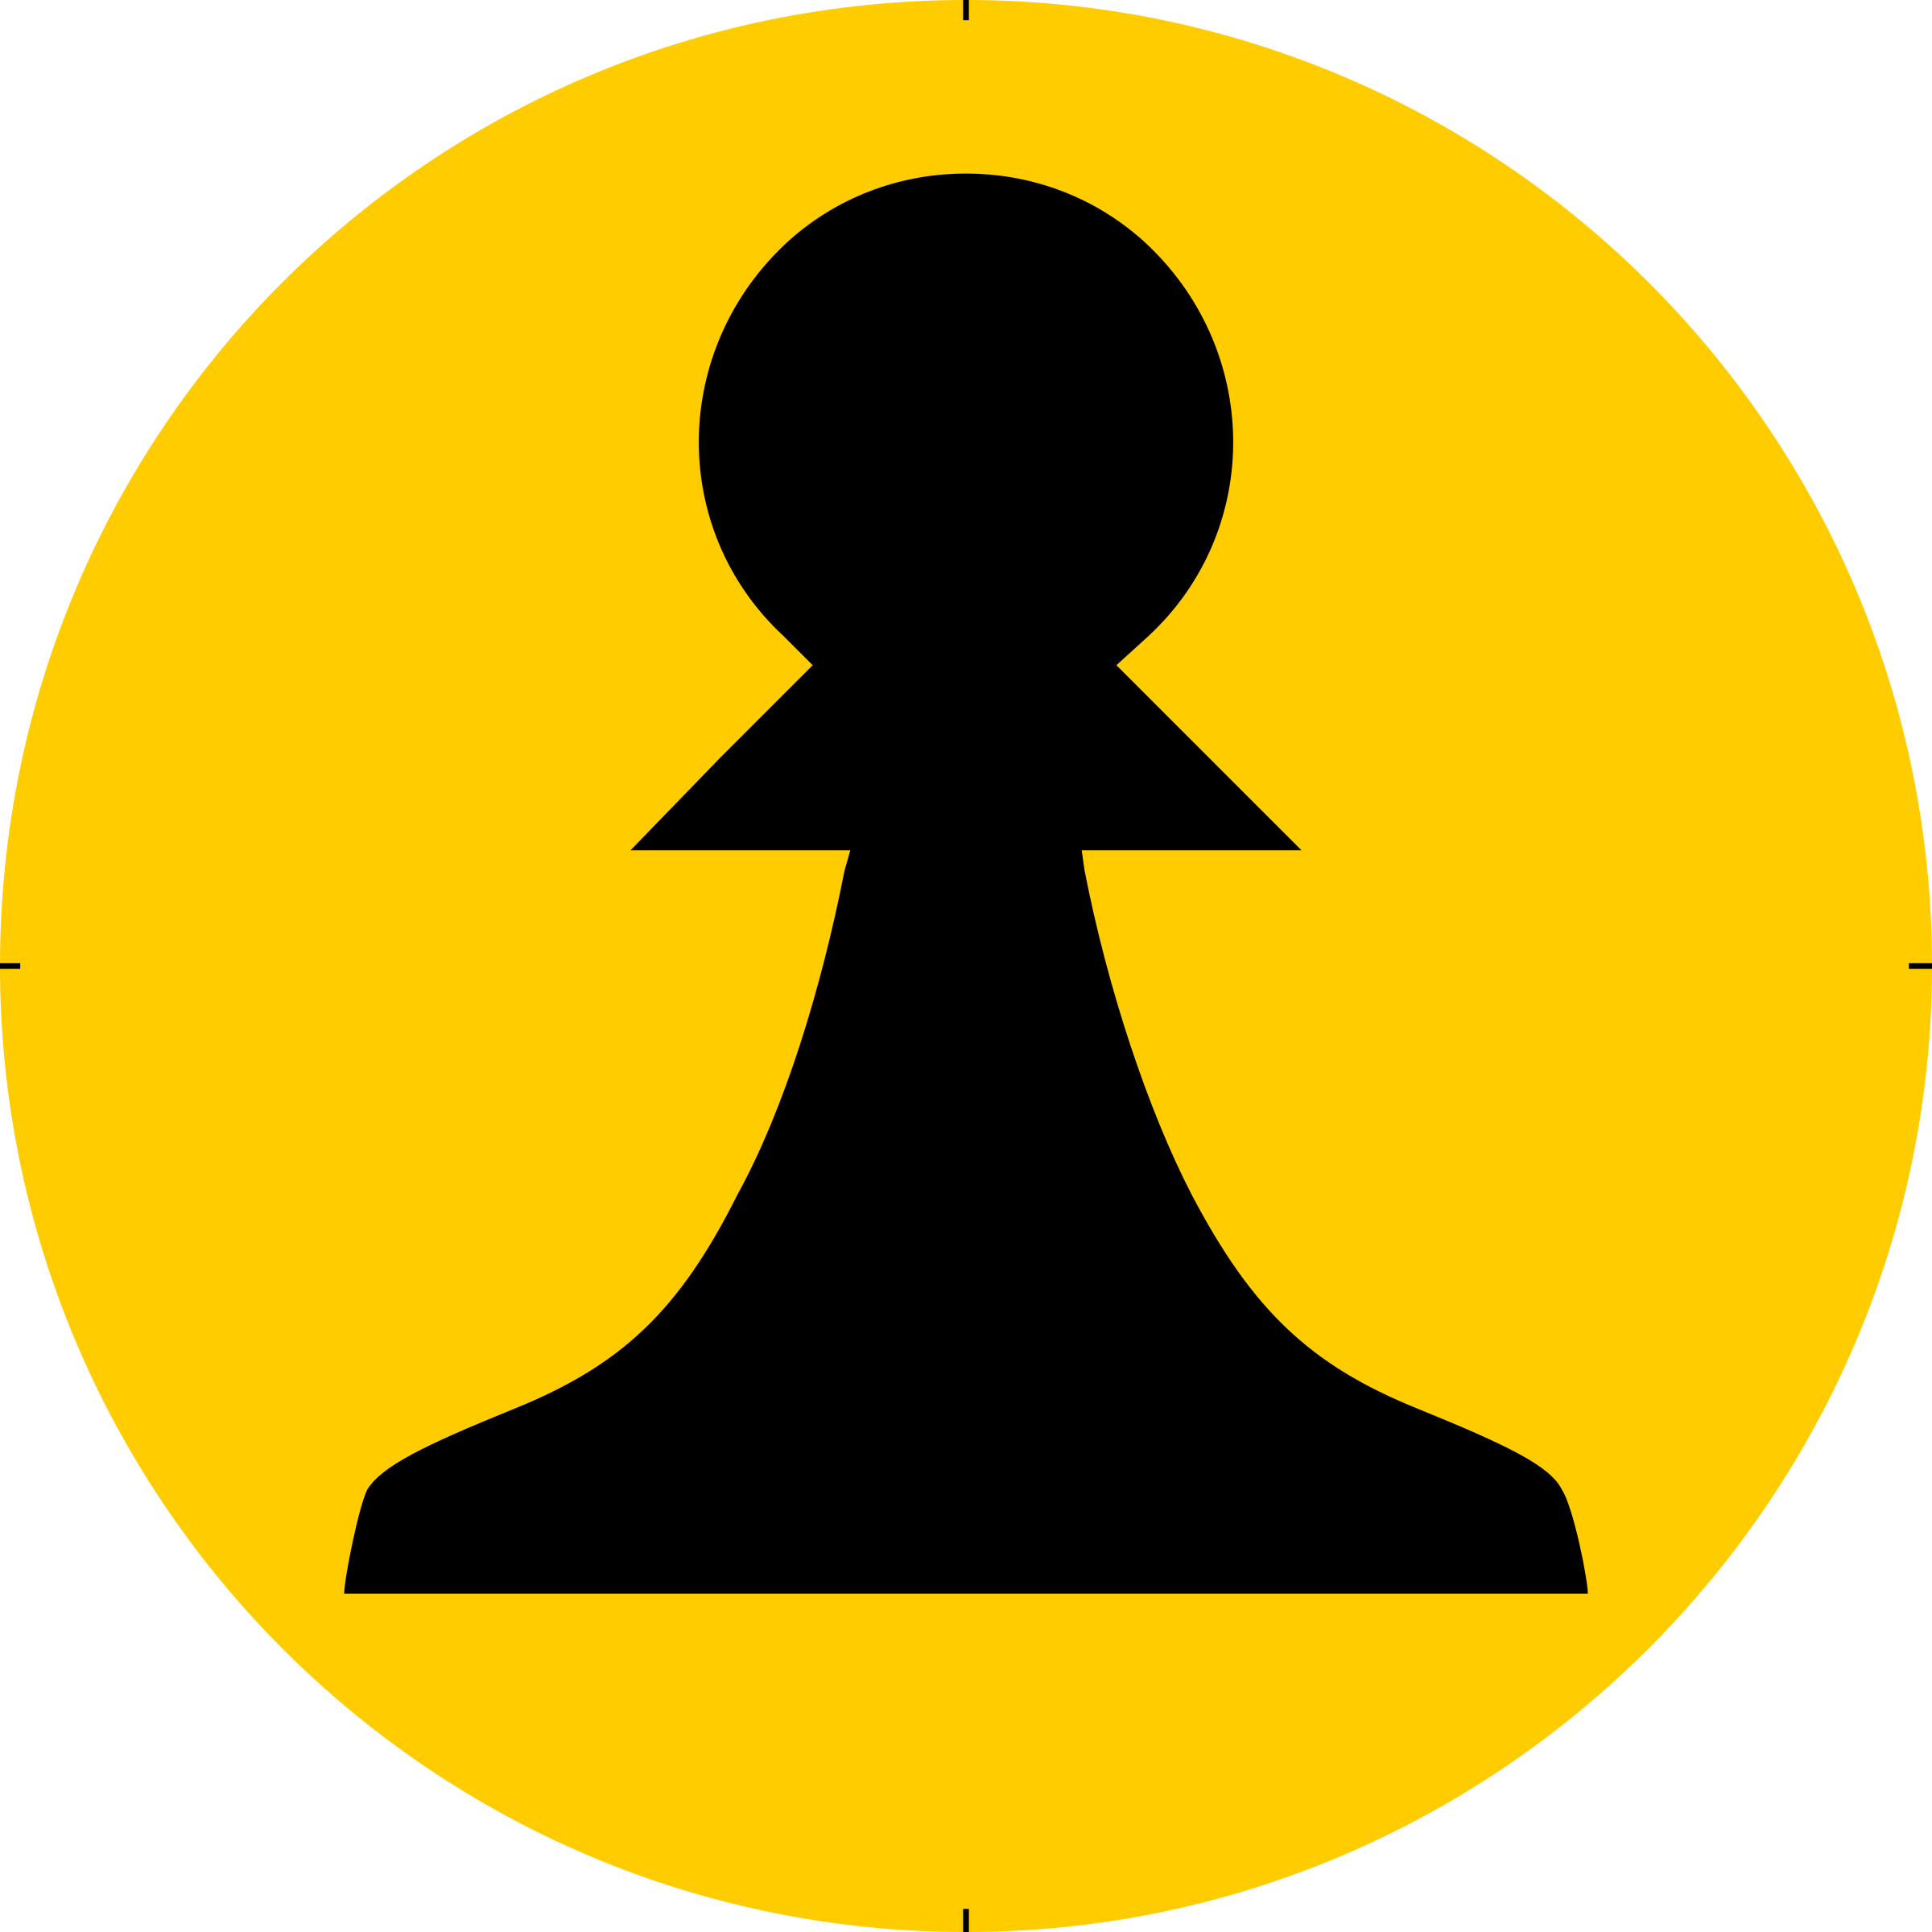 Chess Piece Symbol – Black Pawn – Peón Negro by DG-RA